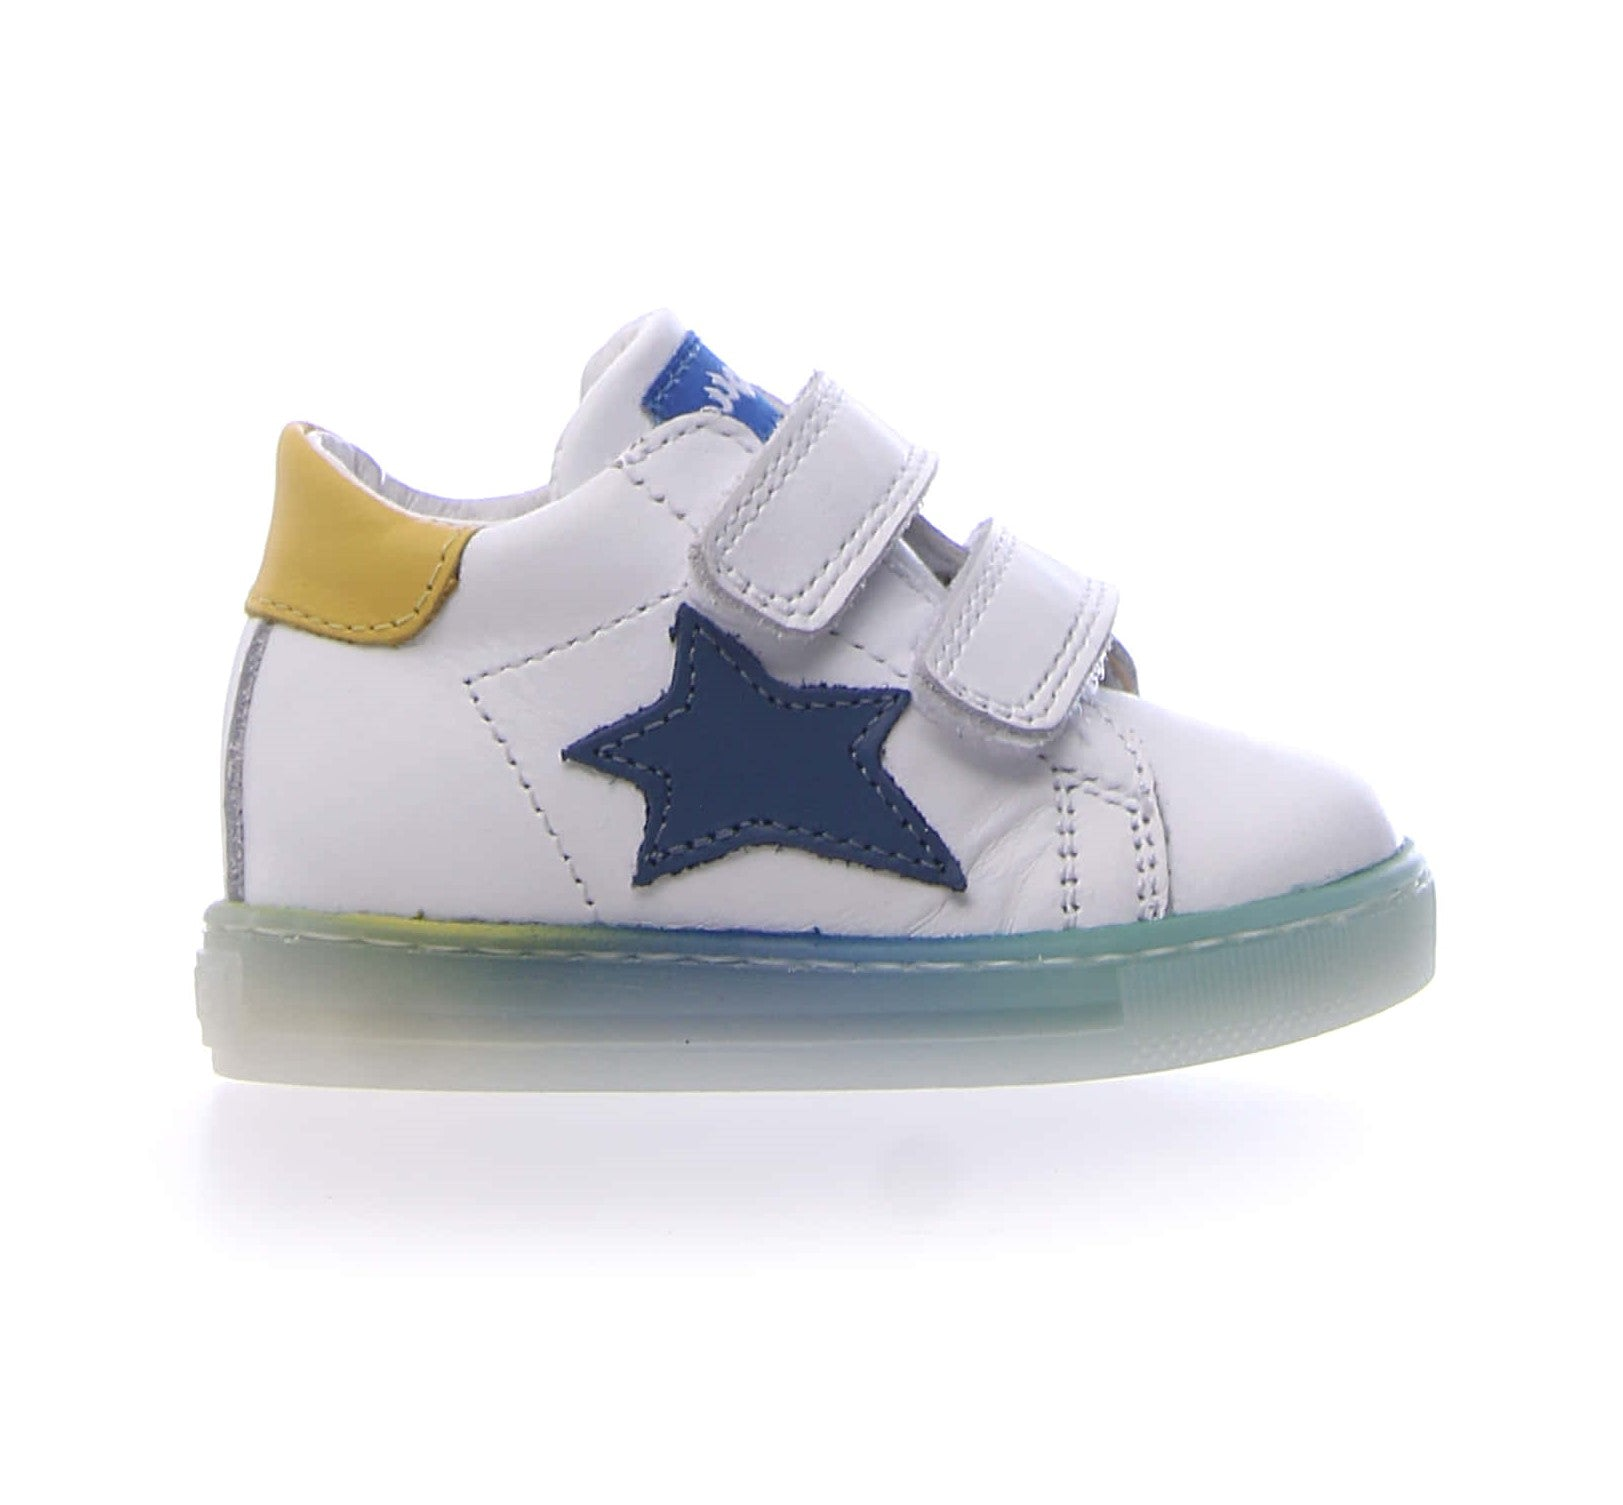 Falcotto White High Top Sneaker with Yellow Trim and Blue Star